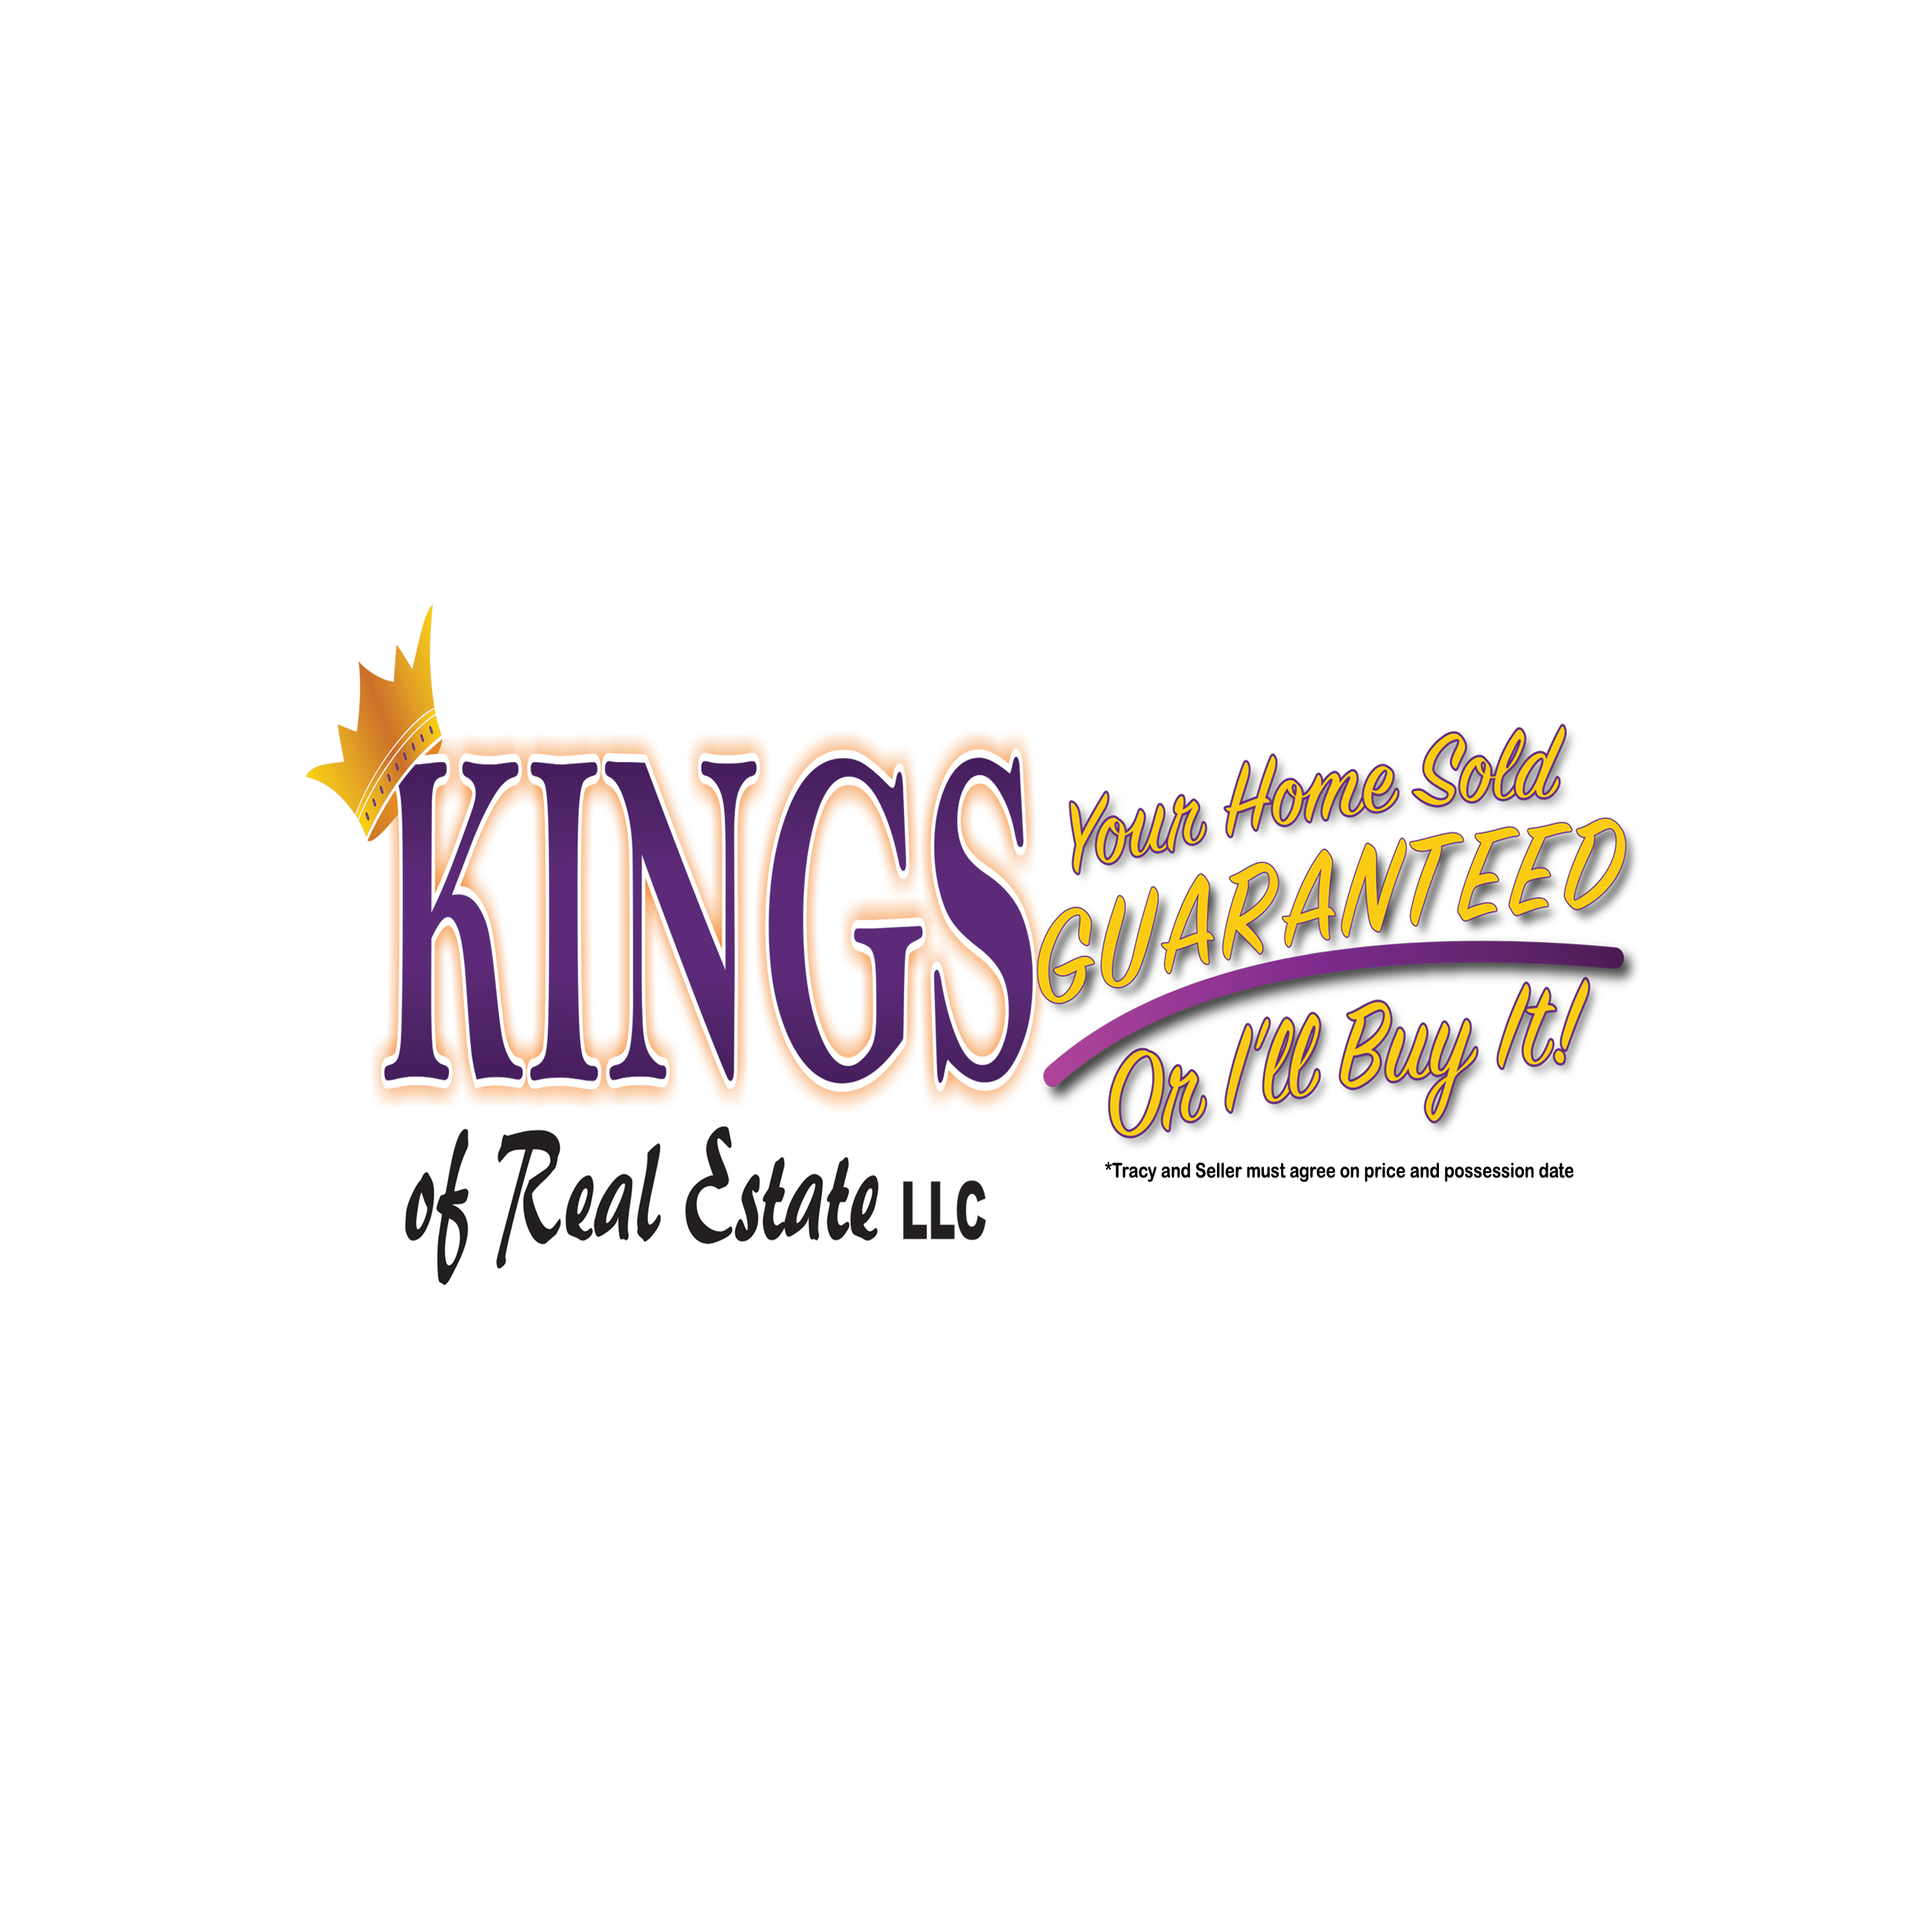 Kings of Real Estate LLC - Knoxville, TN image 0